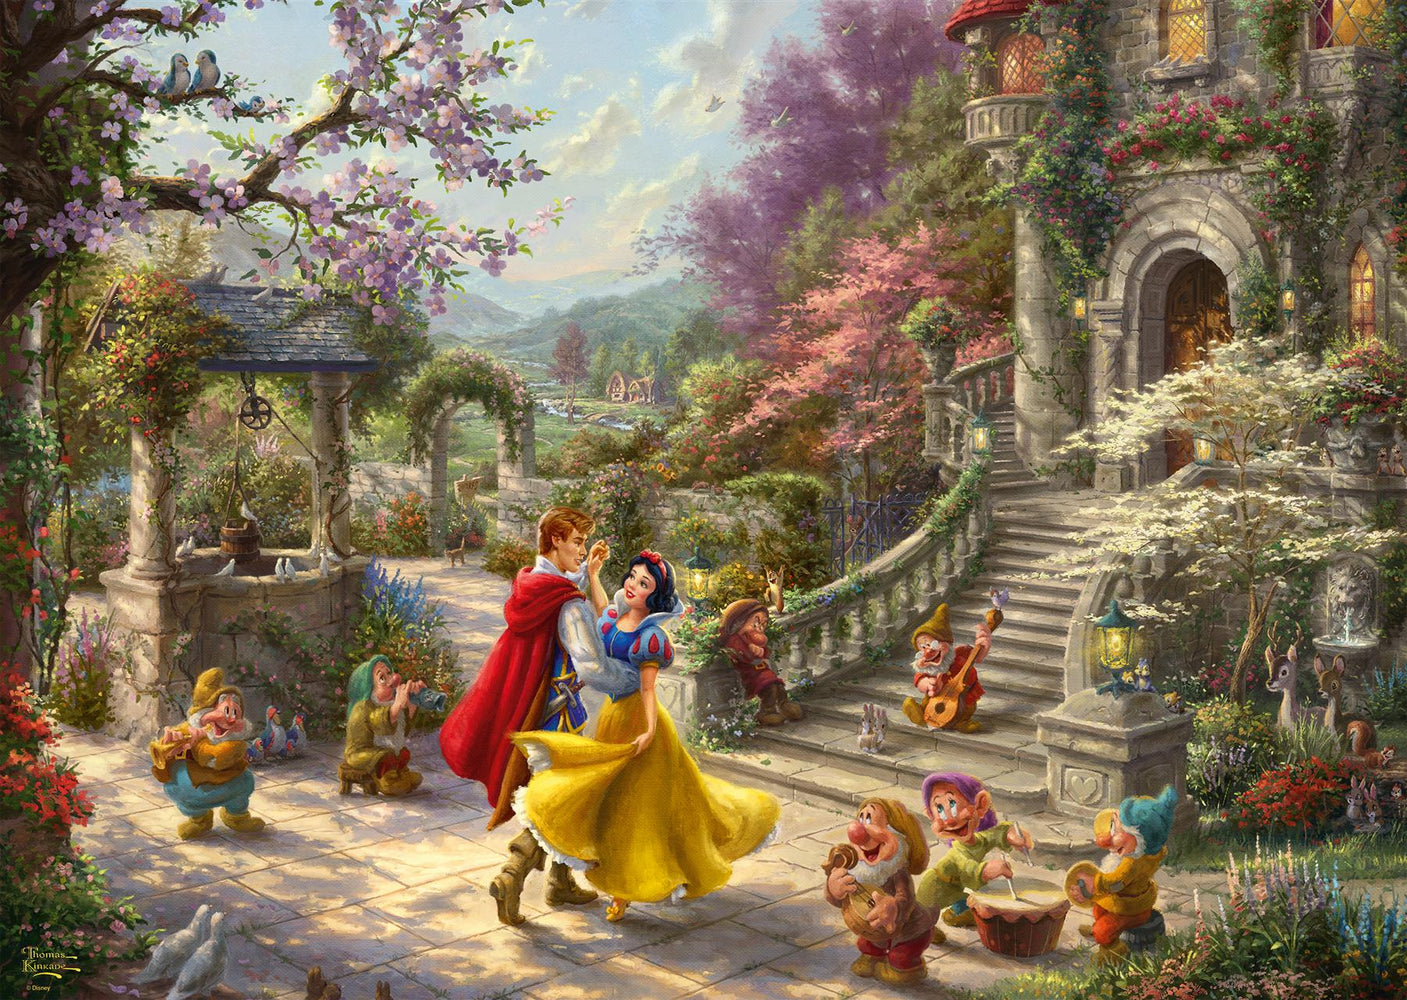 Thomas Kinkade - Disney, Snow White - Dancing with the Prince 1000 Piece Jigsaw Puzzle - All Jigsaw Puzzles